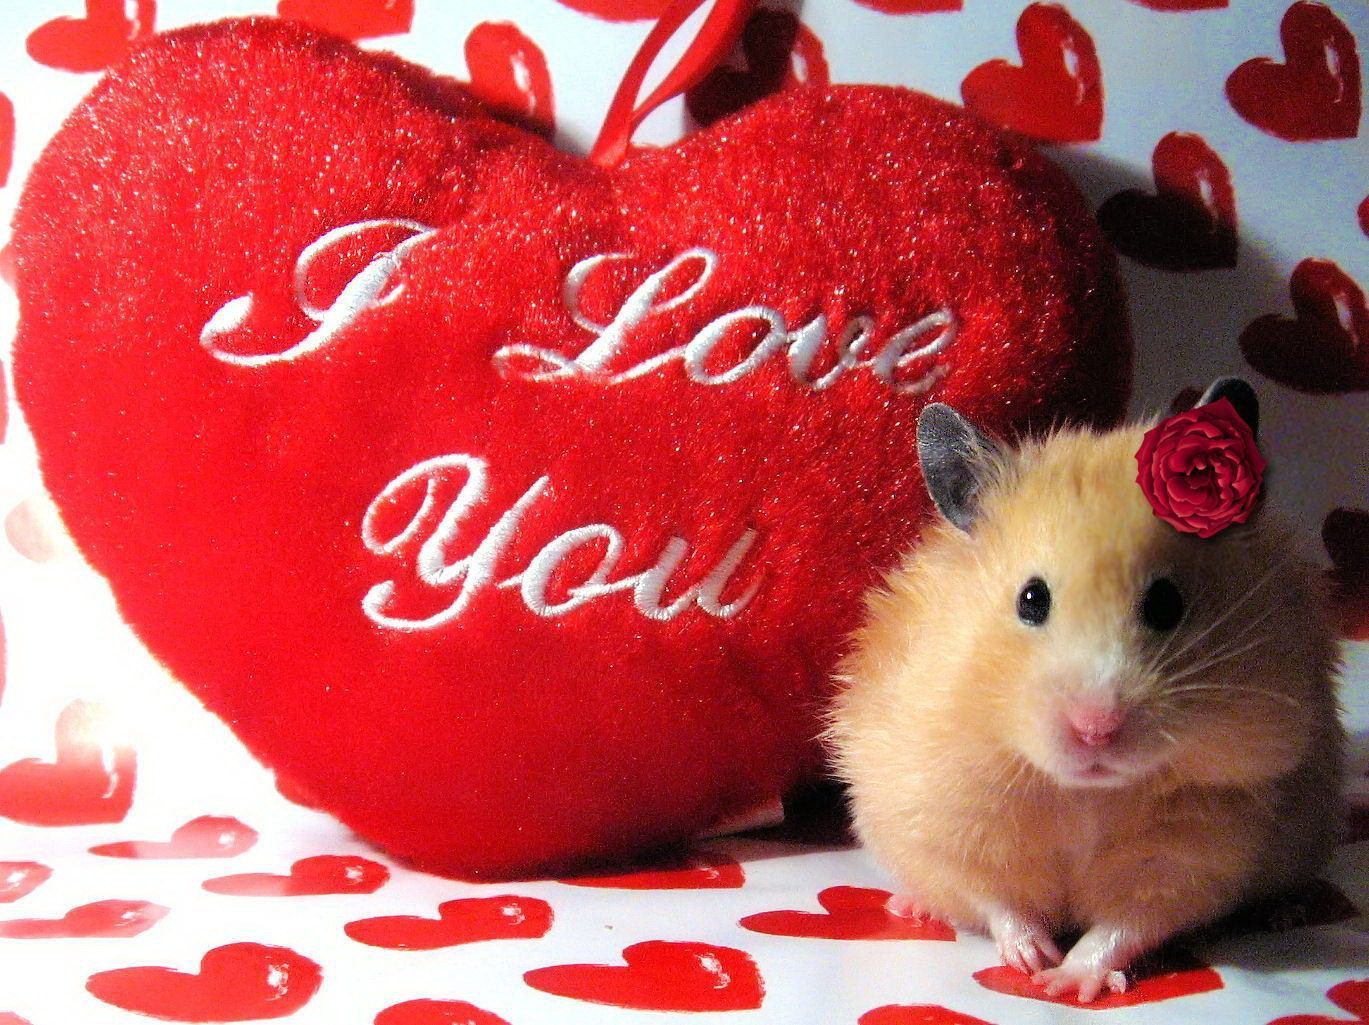 Wallpaper download love you - Backgrounds I Love You Pulse On U Wallpaper Download High